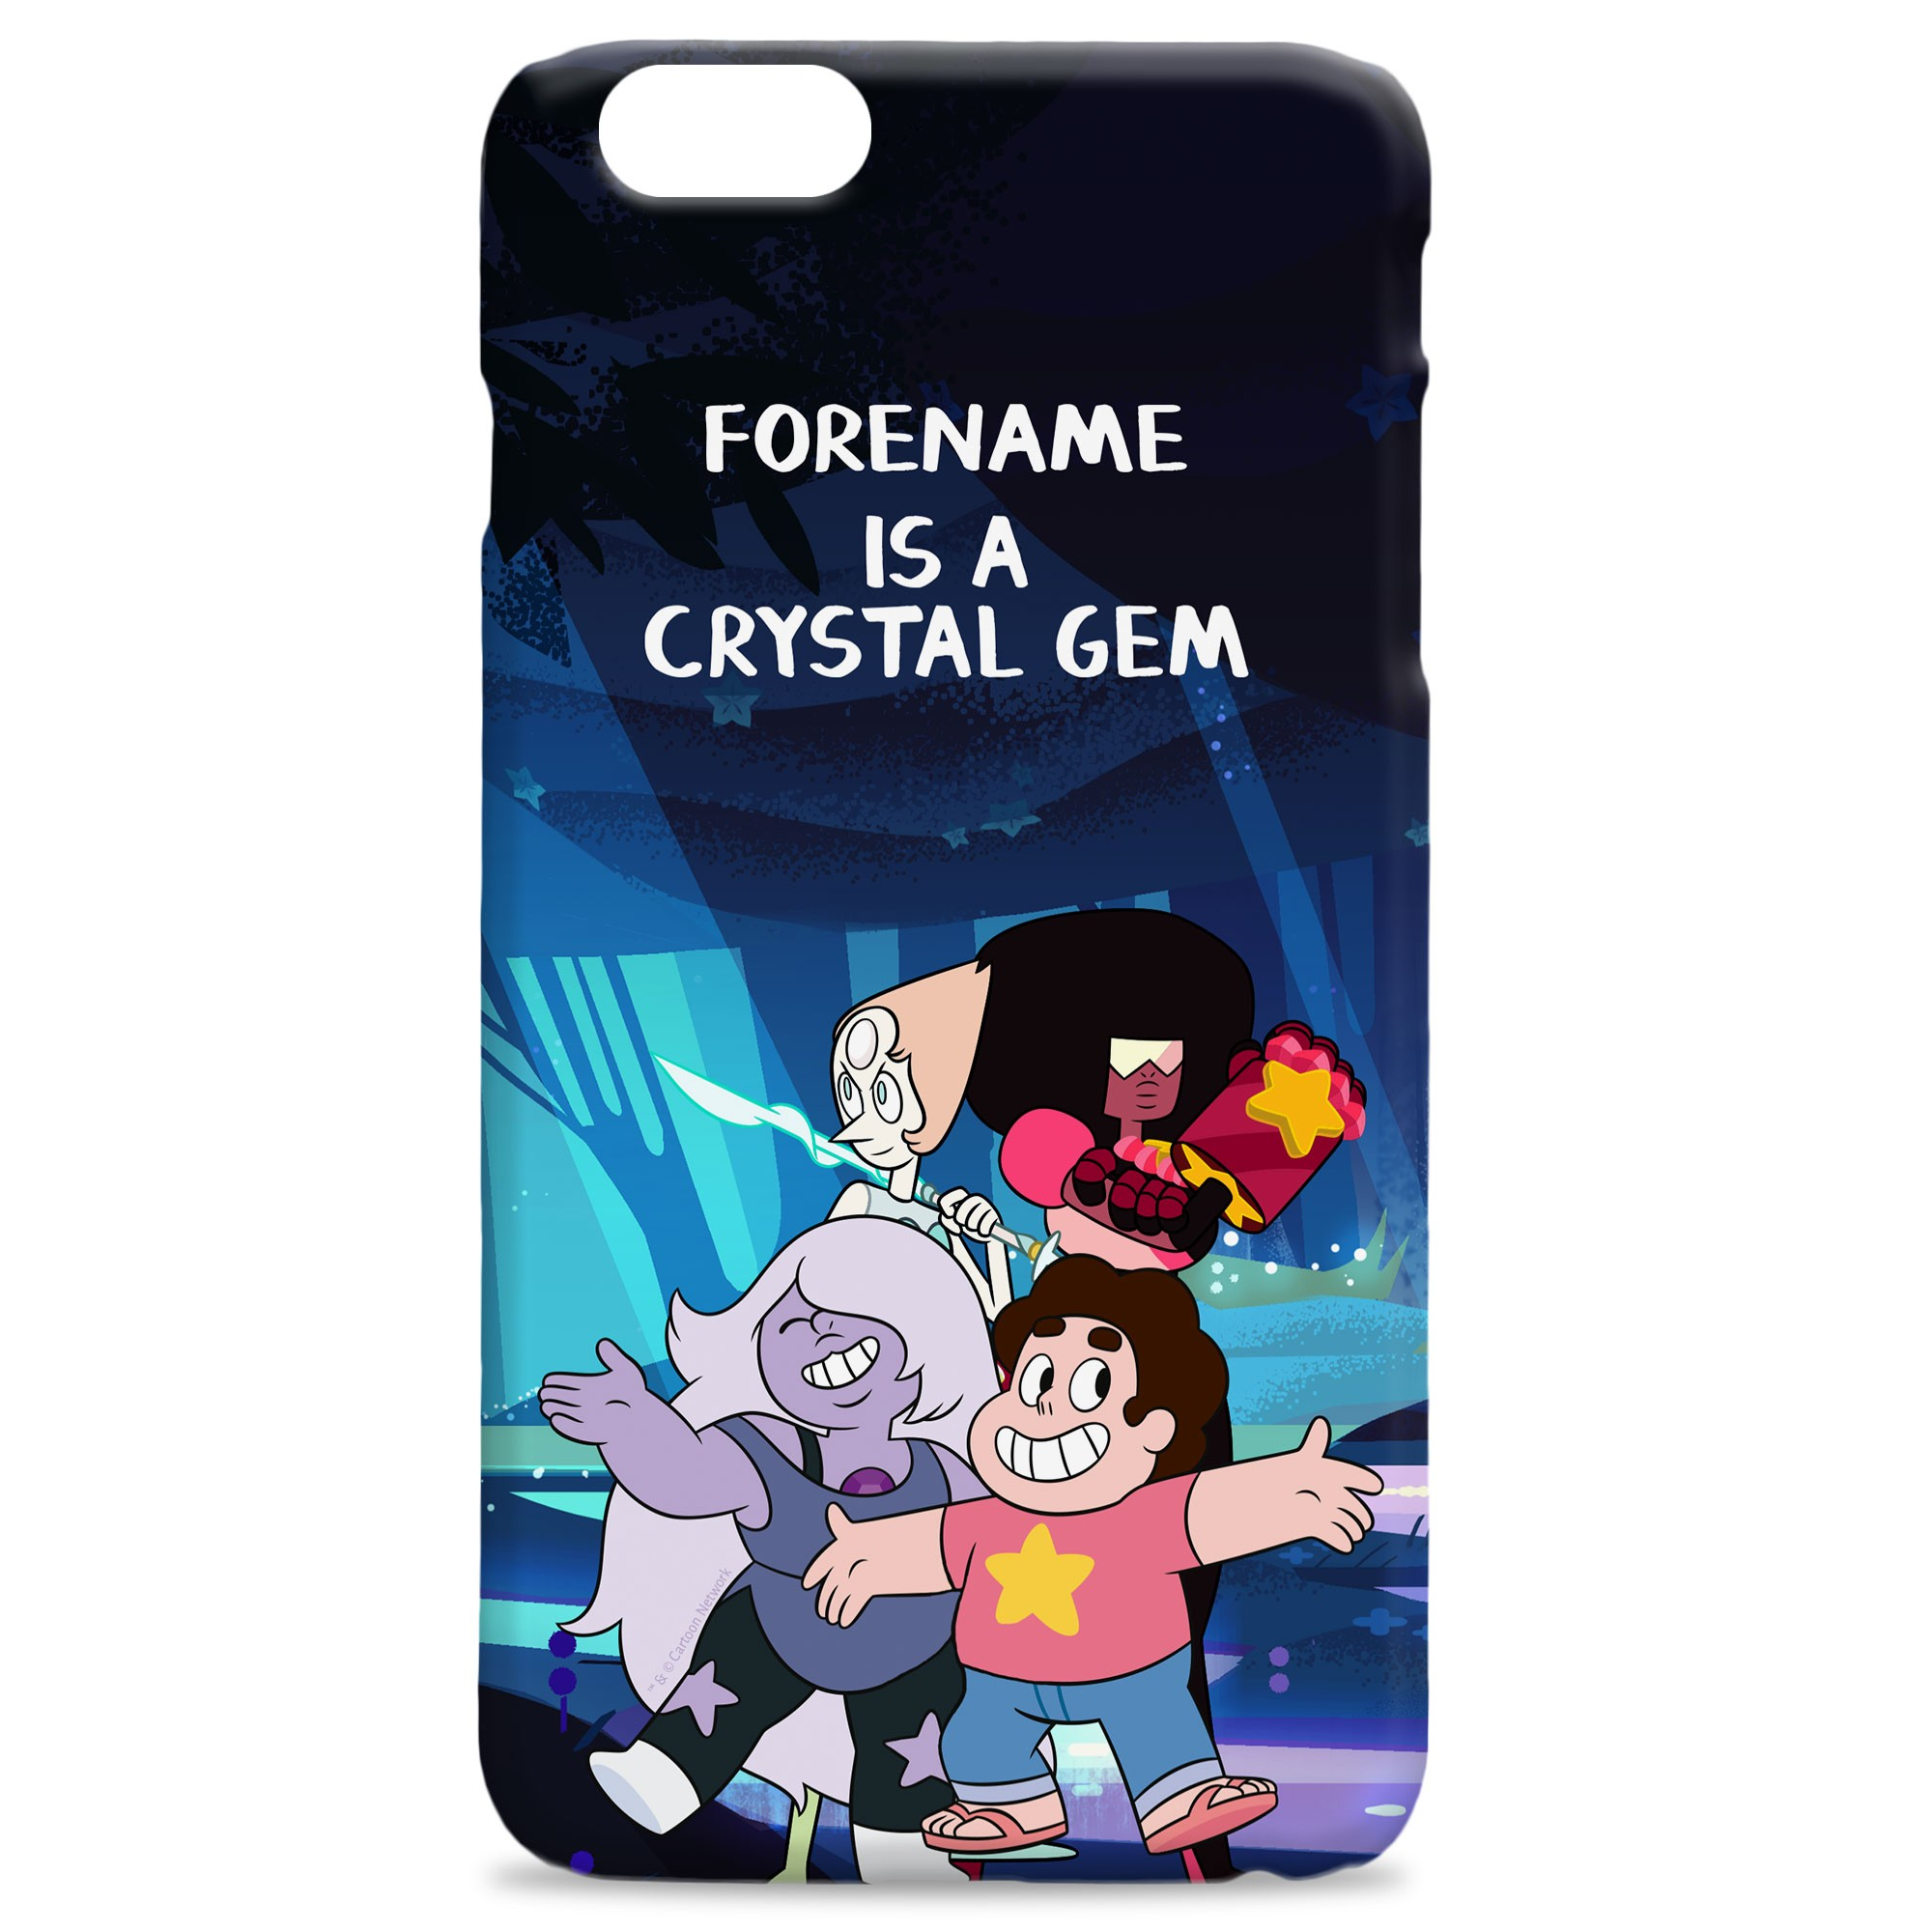 Steven Universe Crystal Gem iPhone Case